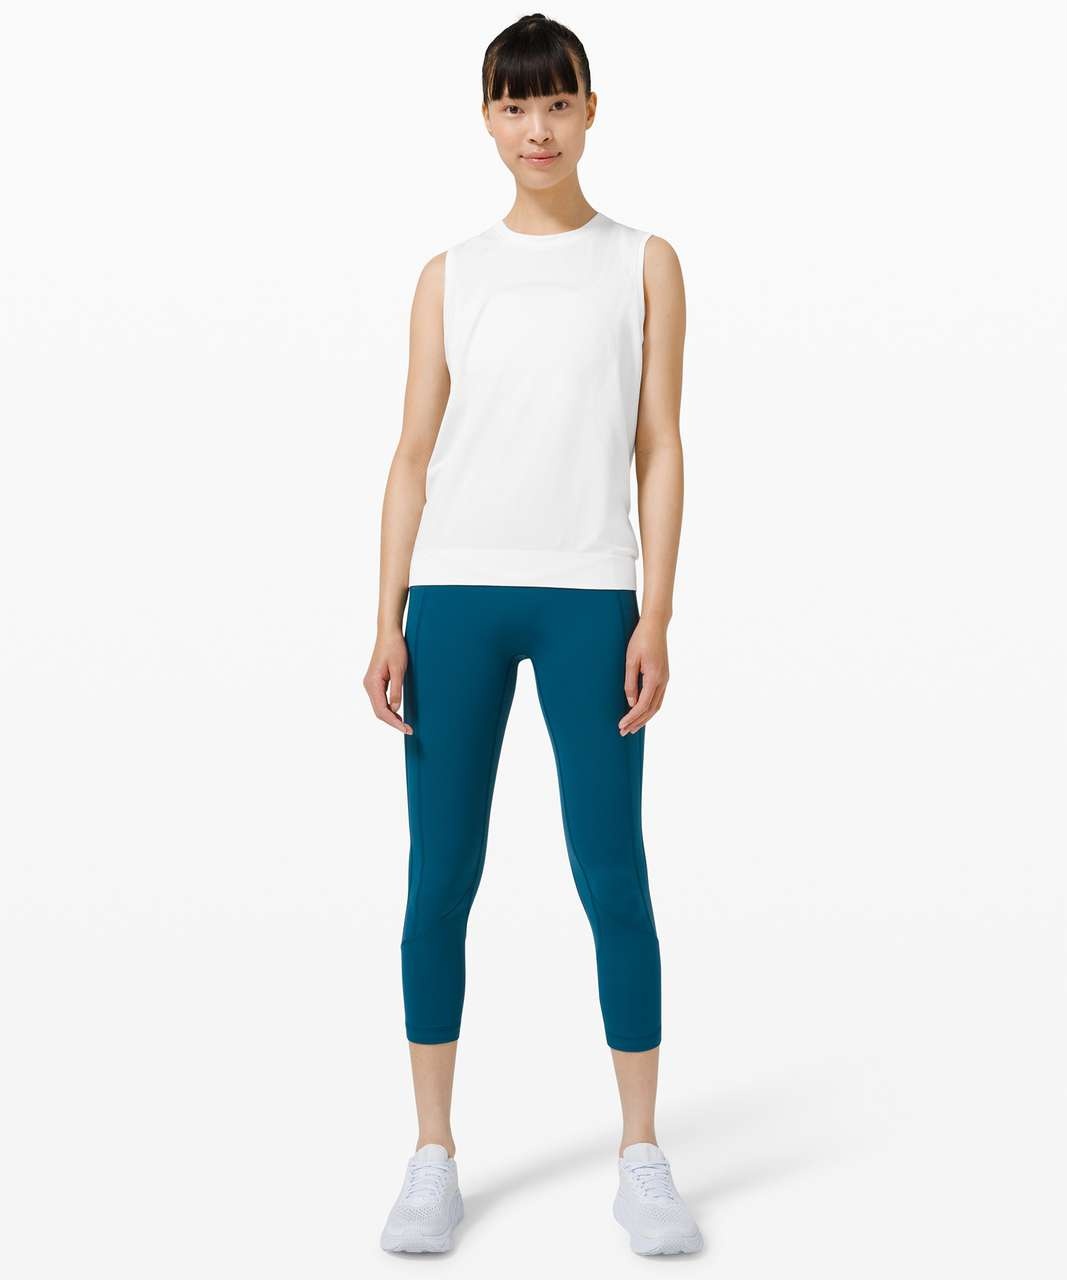 Lululemon Swiftly Breathe Muscle Tank Top - White / White